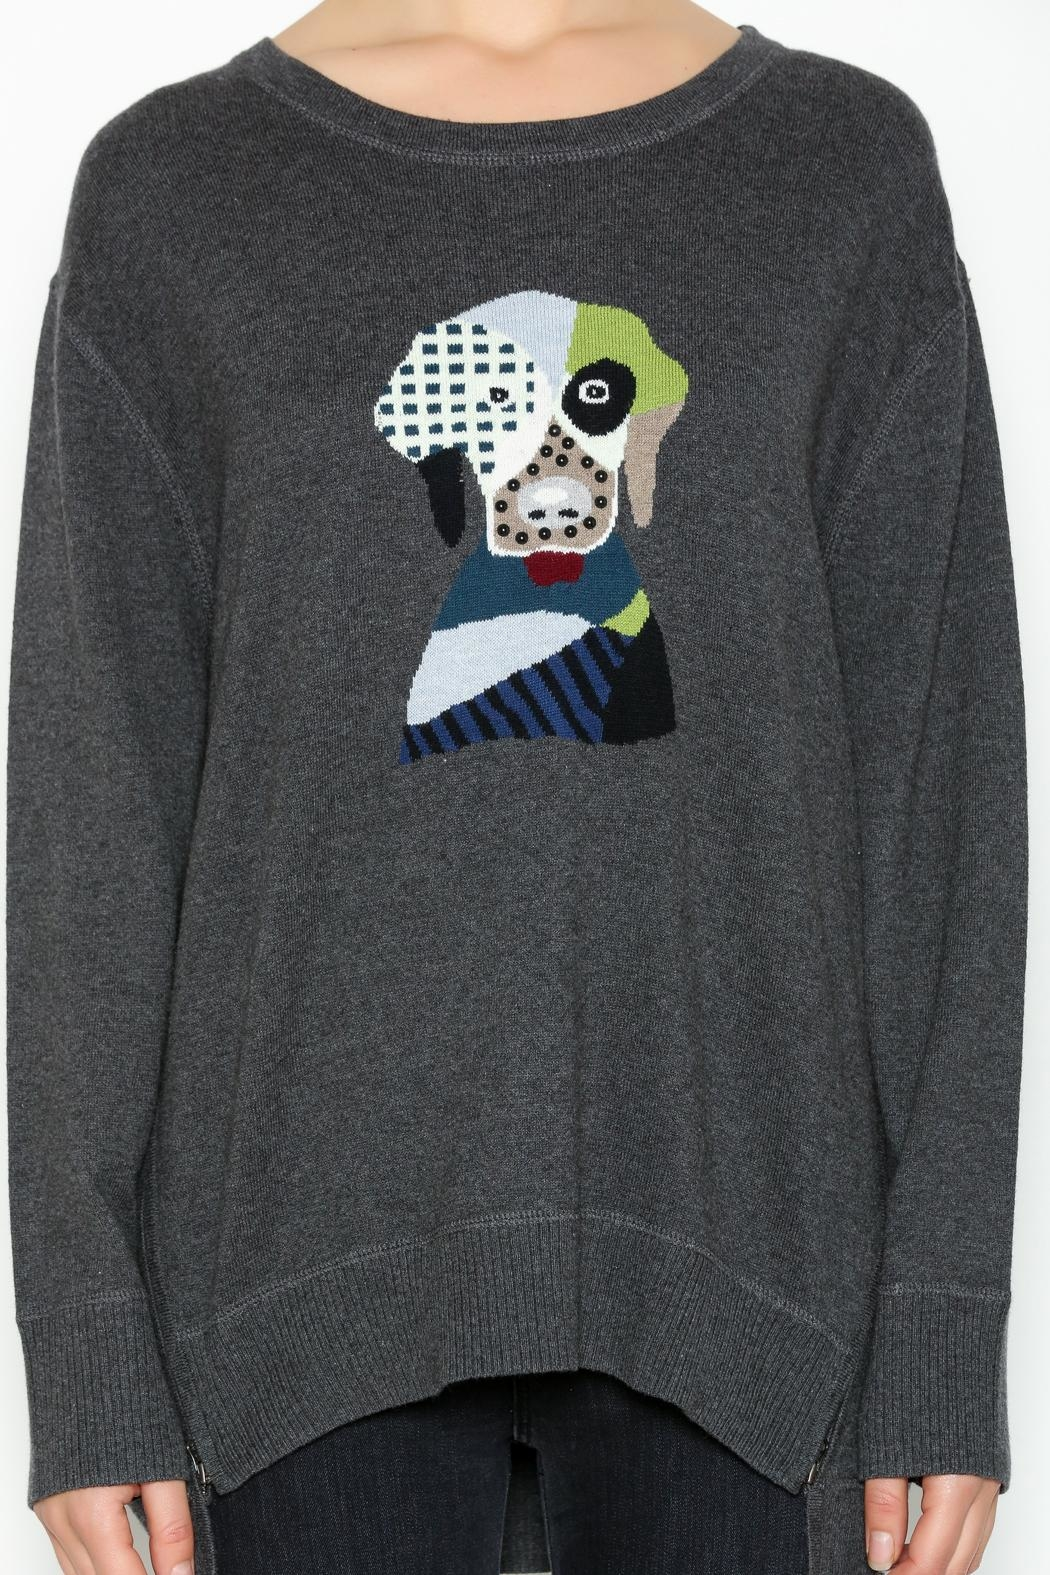 Lisa Todd Fido Crew-Neck Sweater - Front Full Image